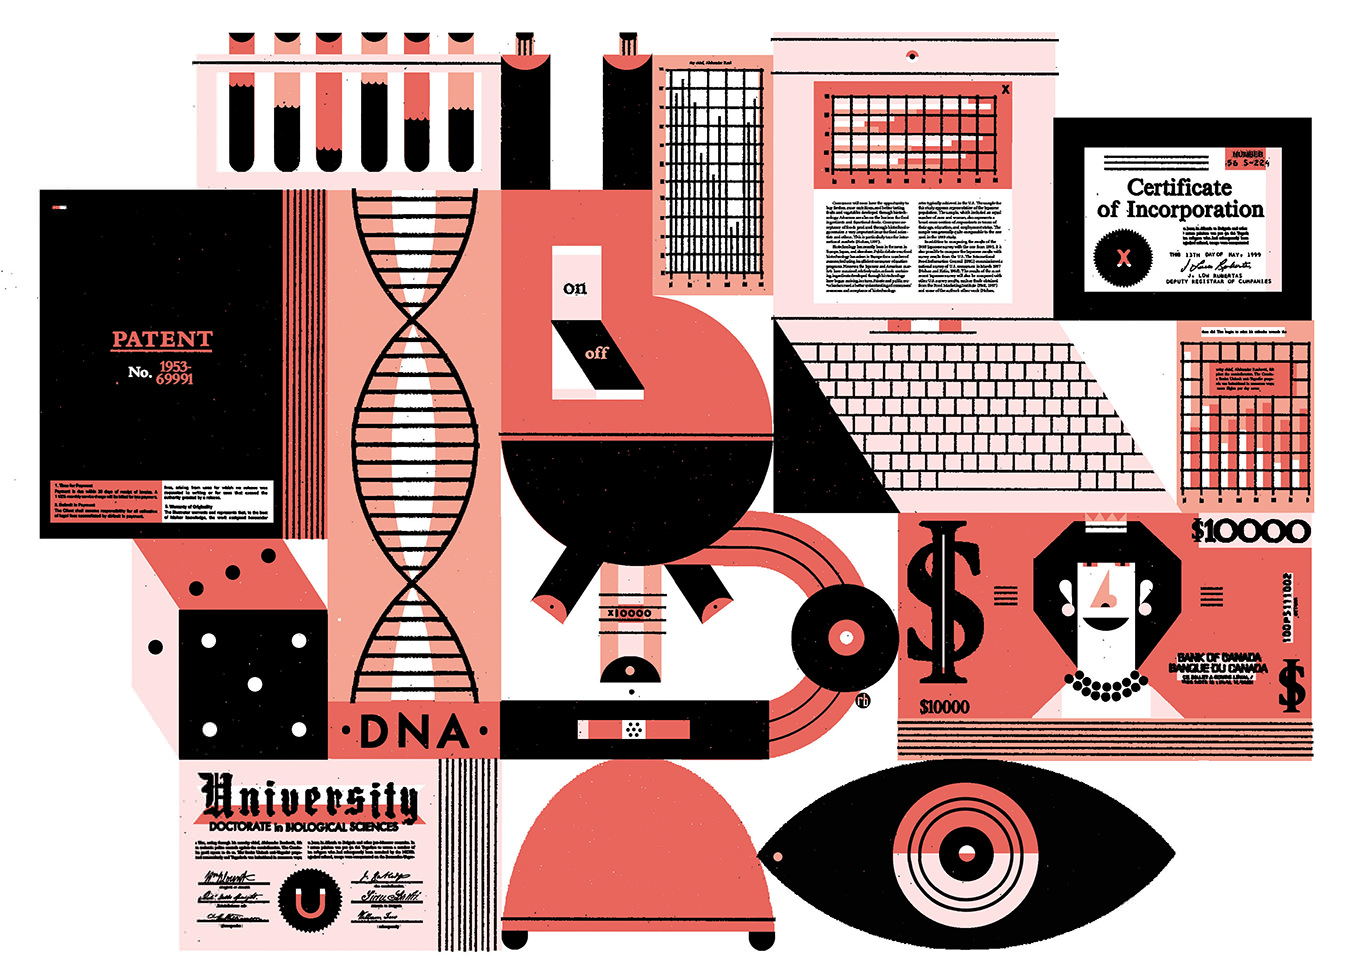 NUVO Magazine: Investing in Biotechnology.